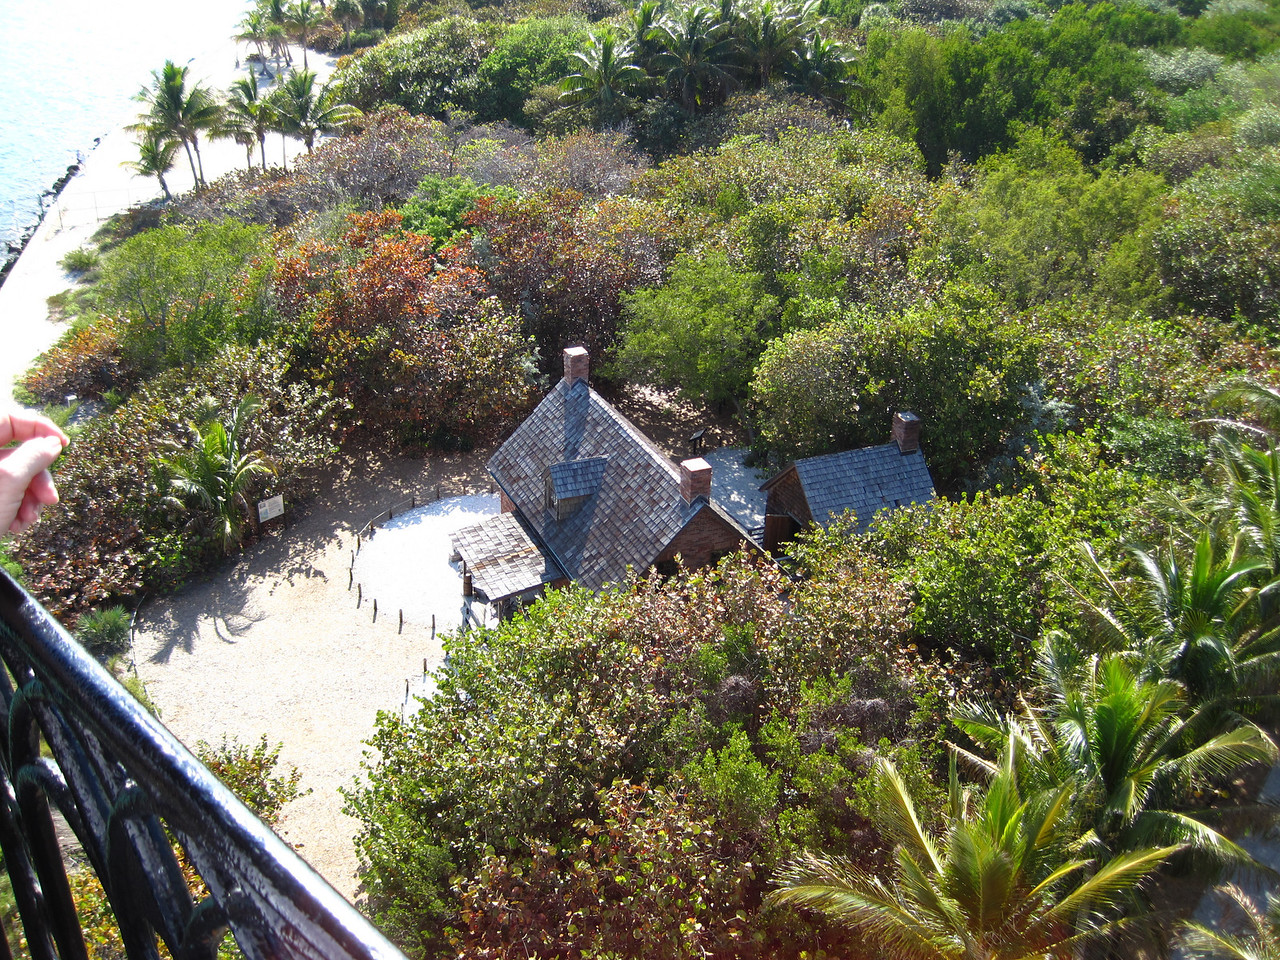 The lighthouse keepers quarters below